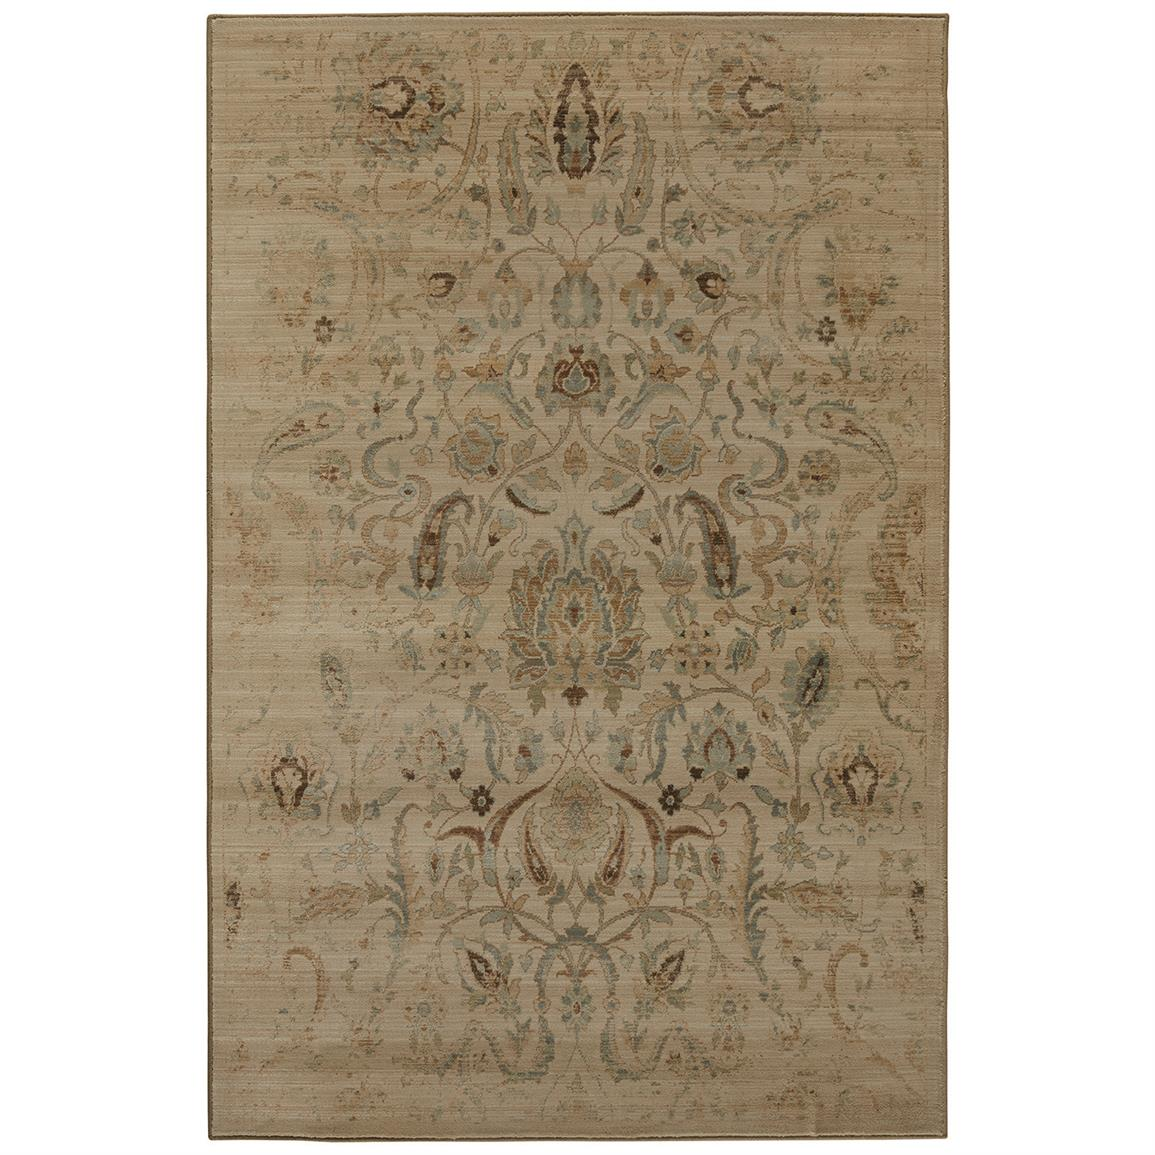 American Craftsman Sentiment Rug, 8 foot x 11 foot